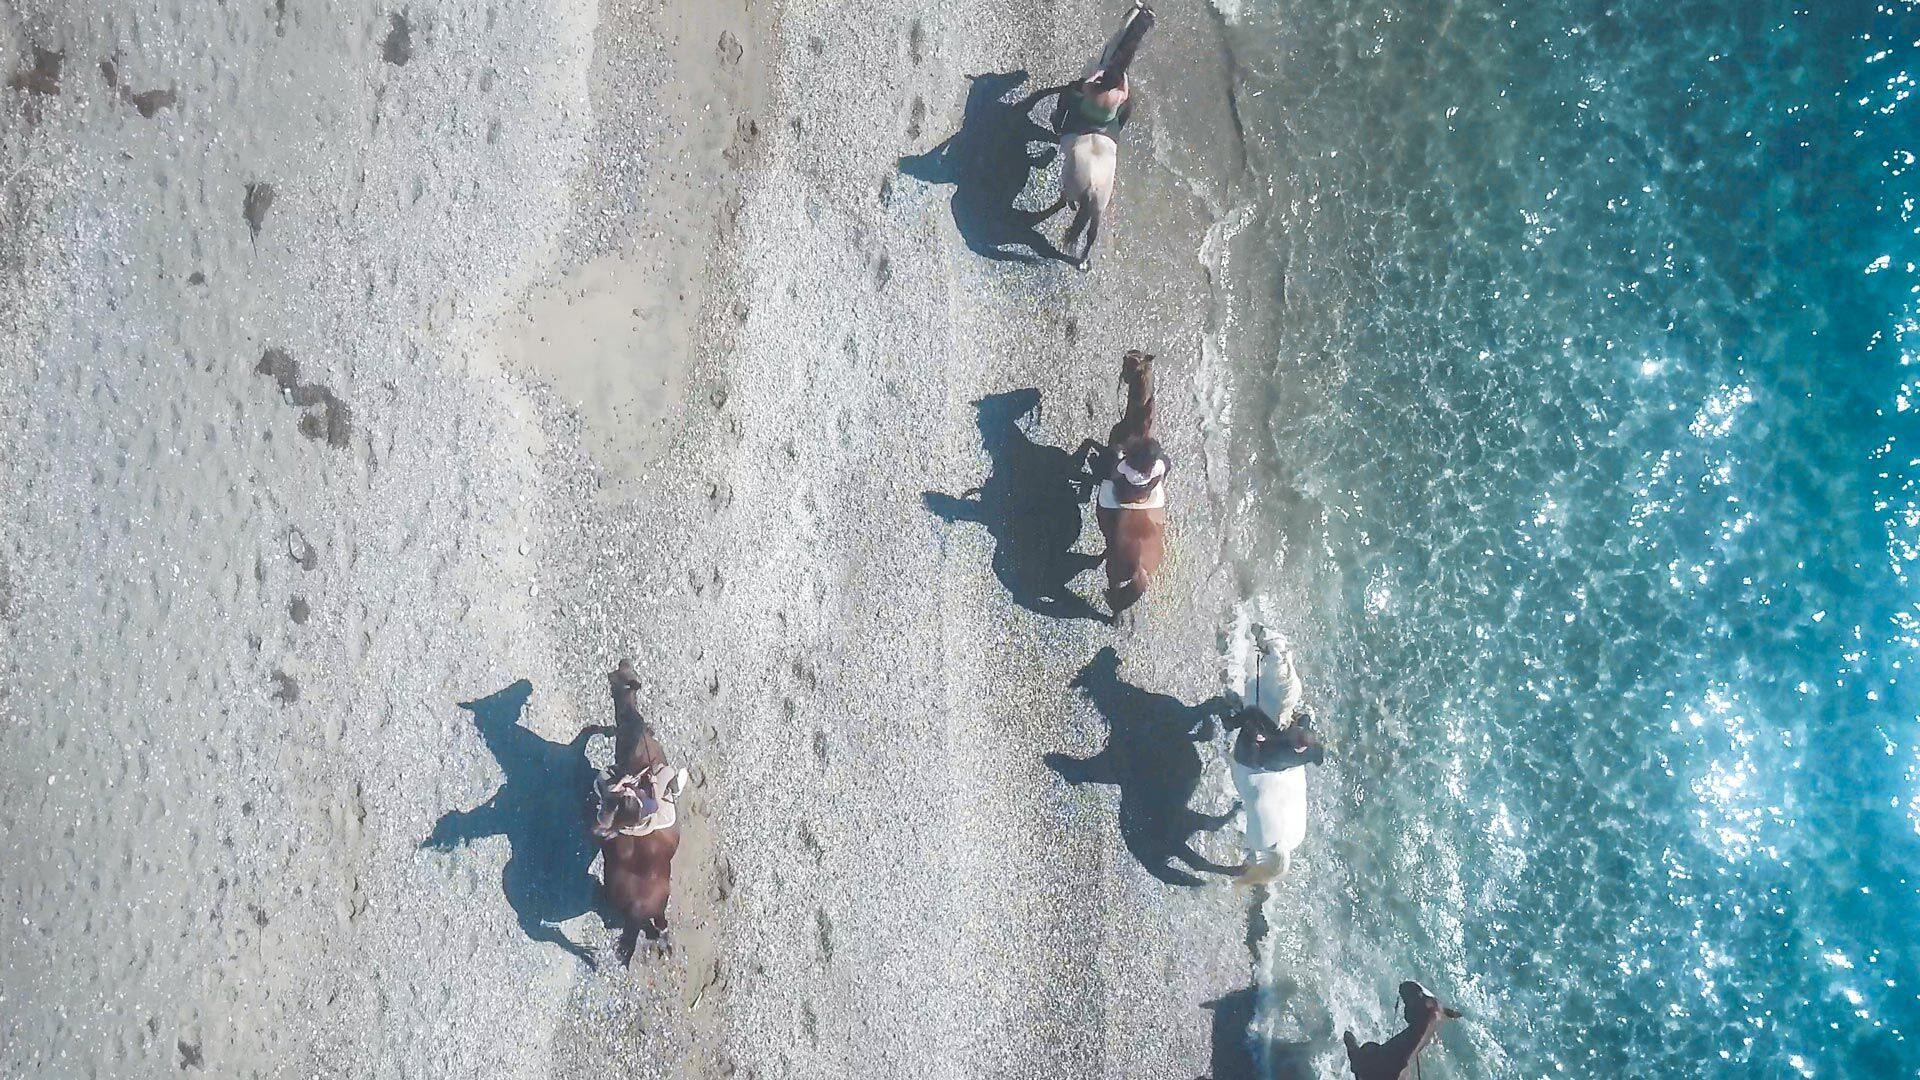 Seaside horse ride activity close to Kalamata city